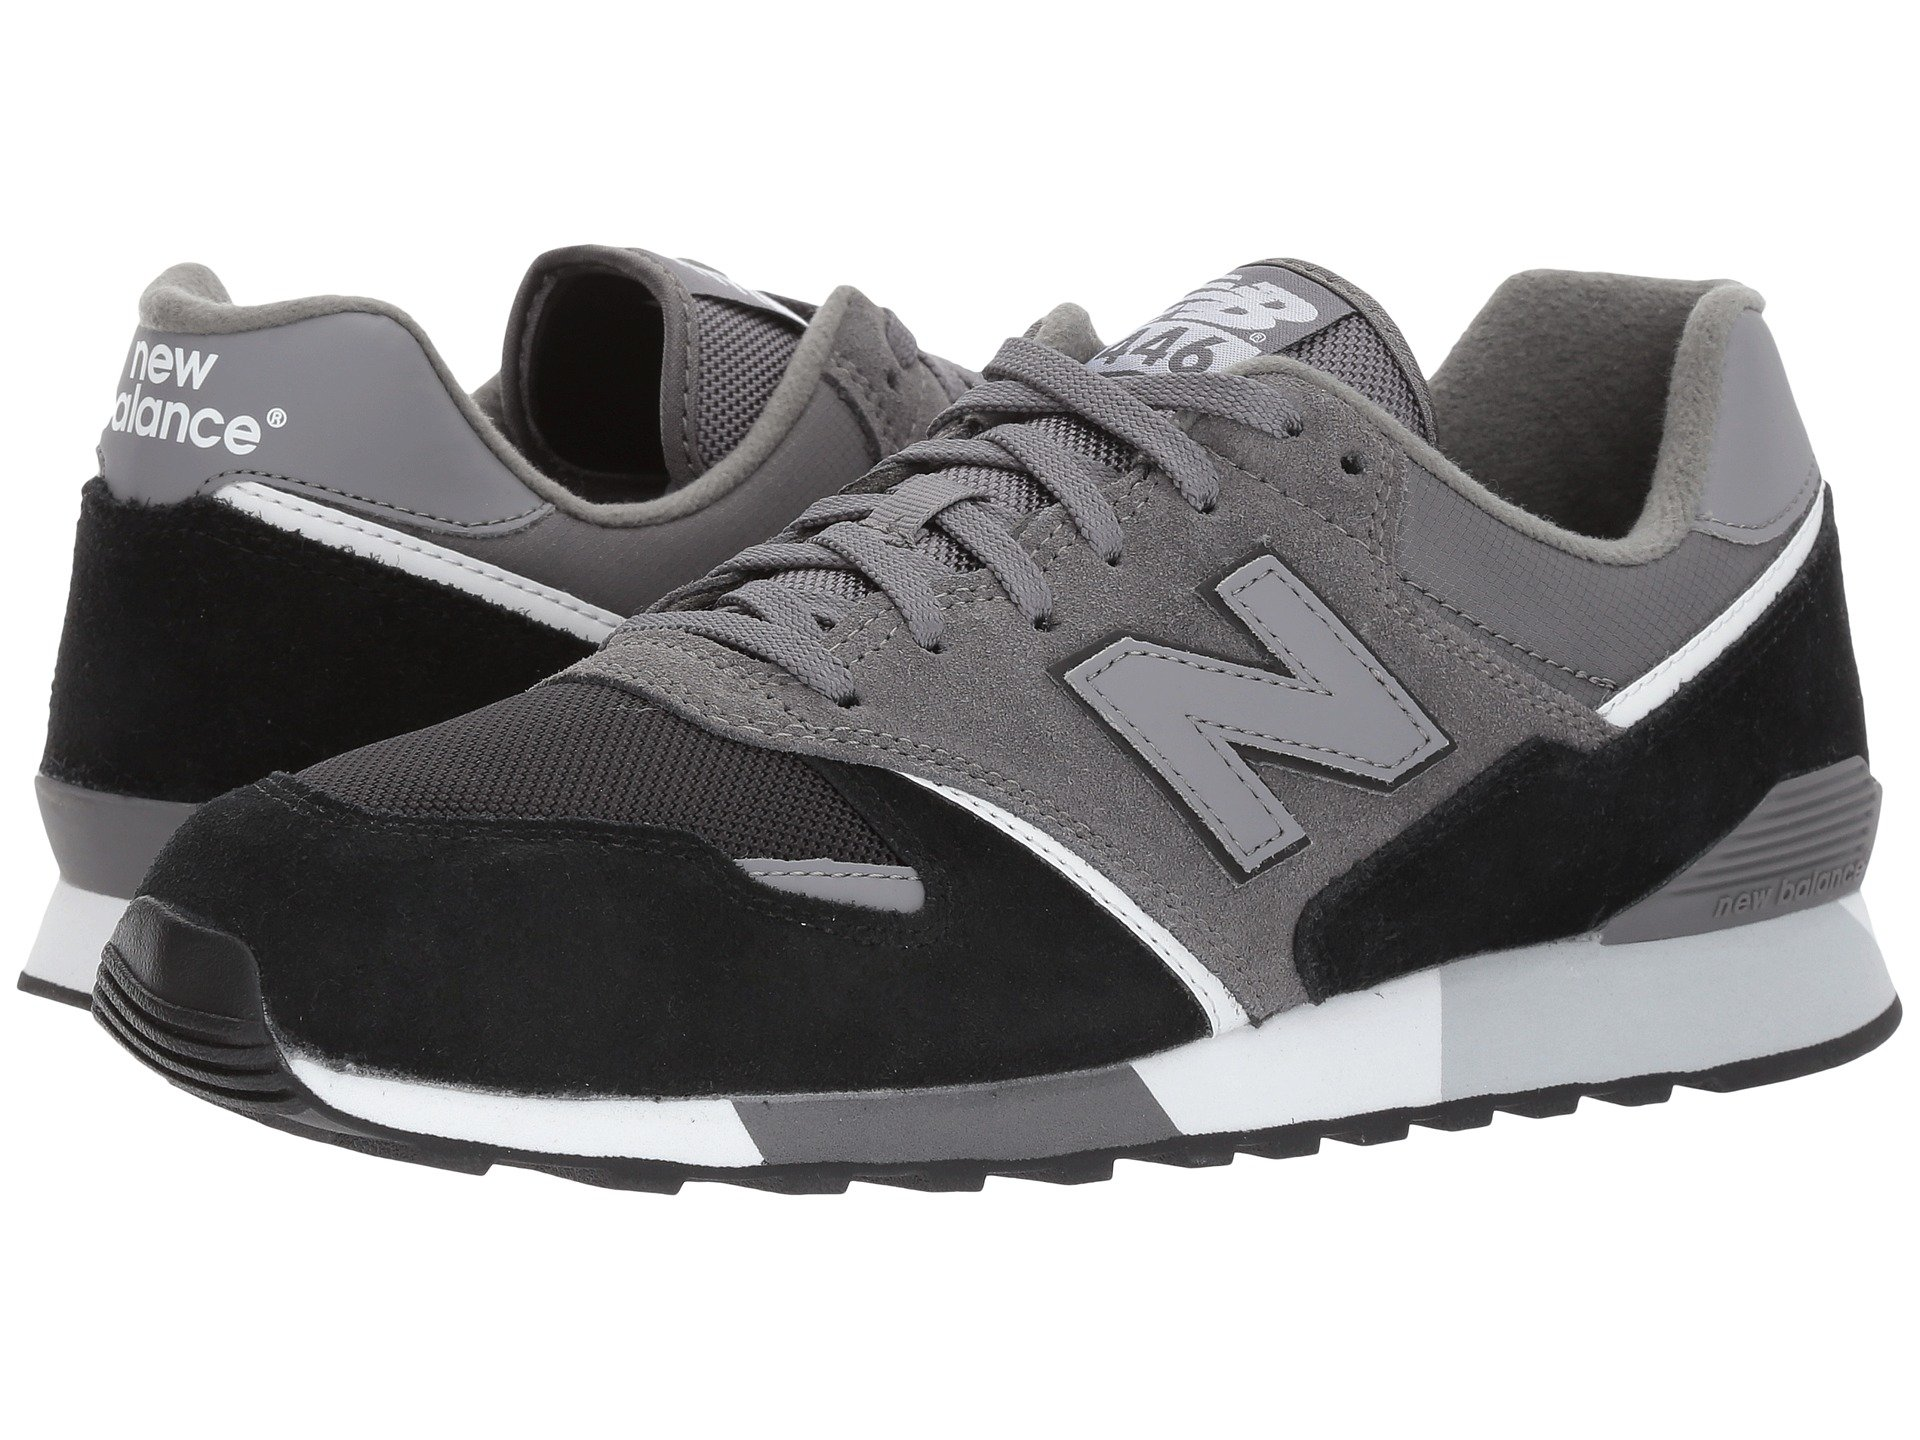 new balance black and white mens new balance 472 – Red Procesal